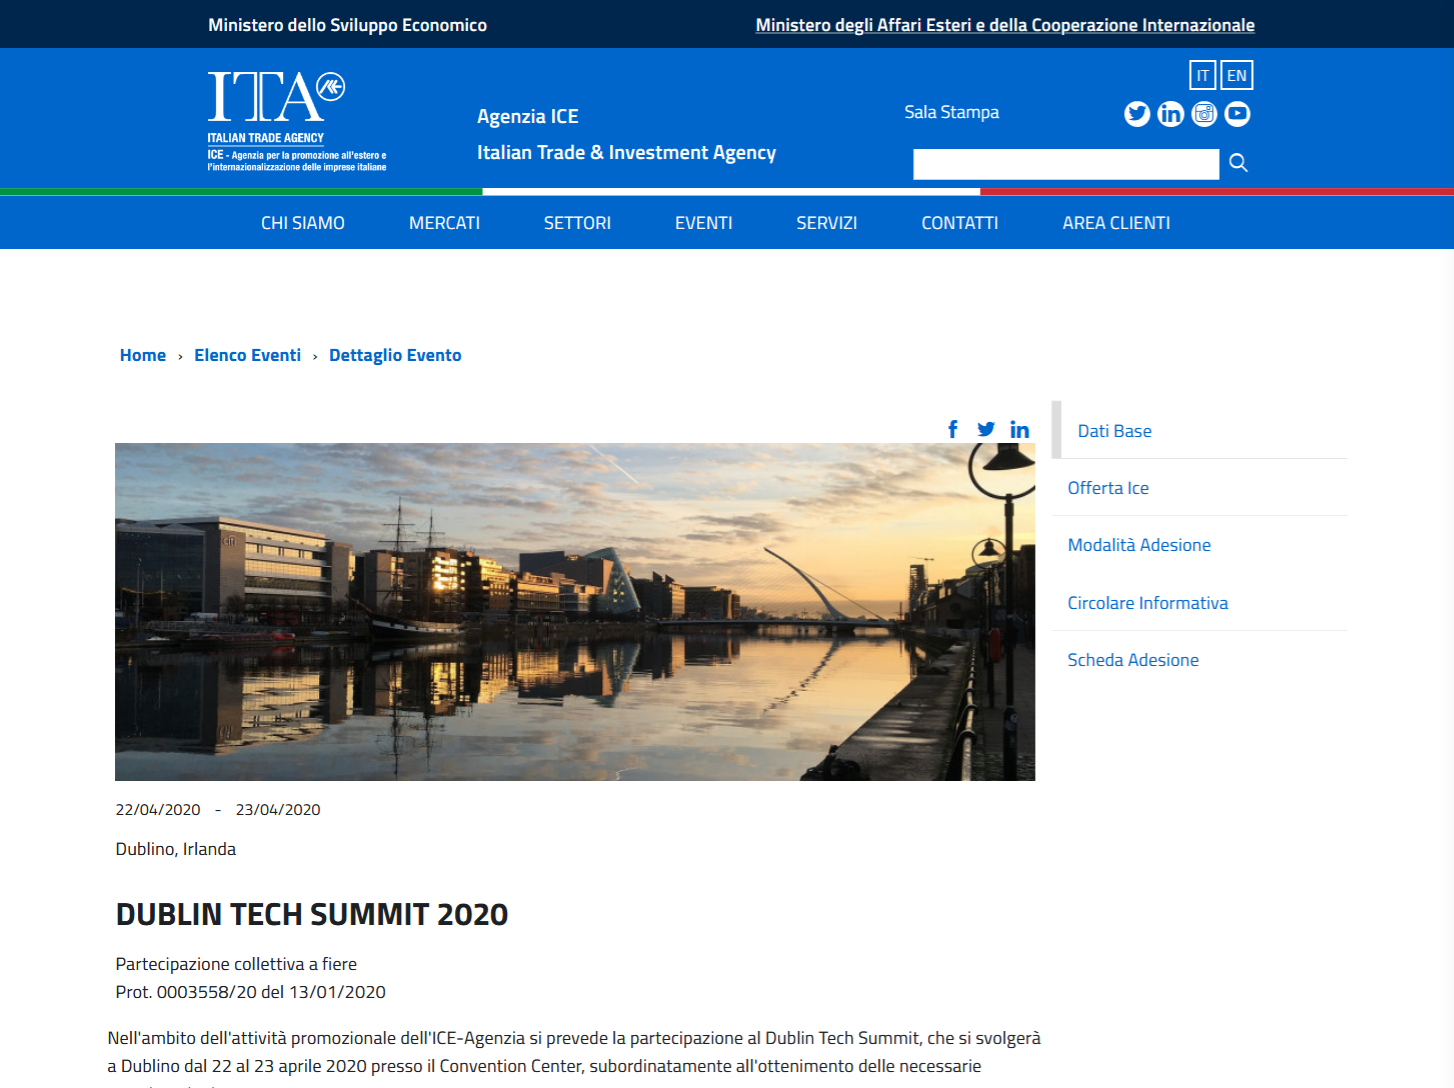 DUBLIN TECH SUMMIT 2020